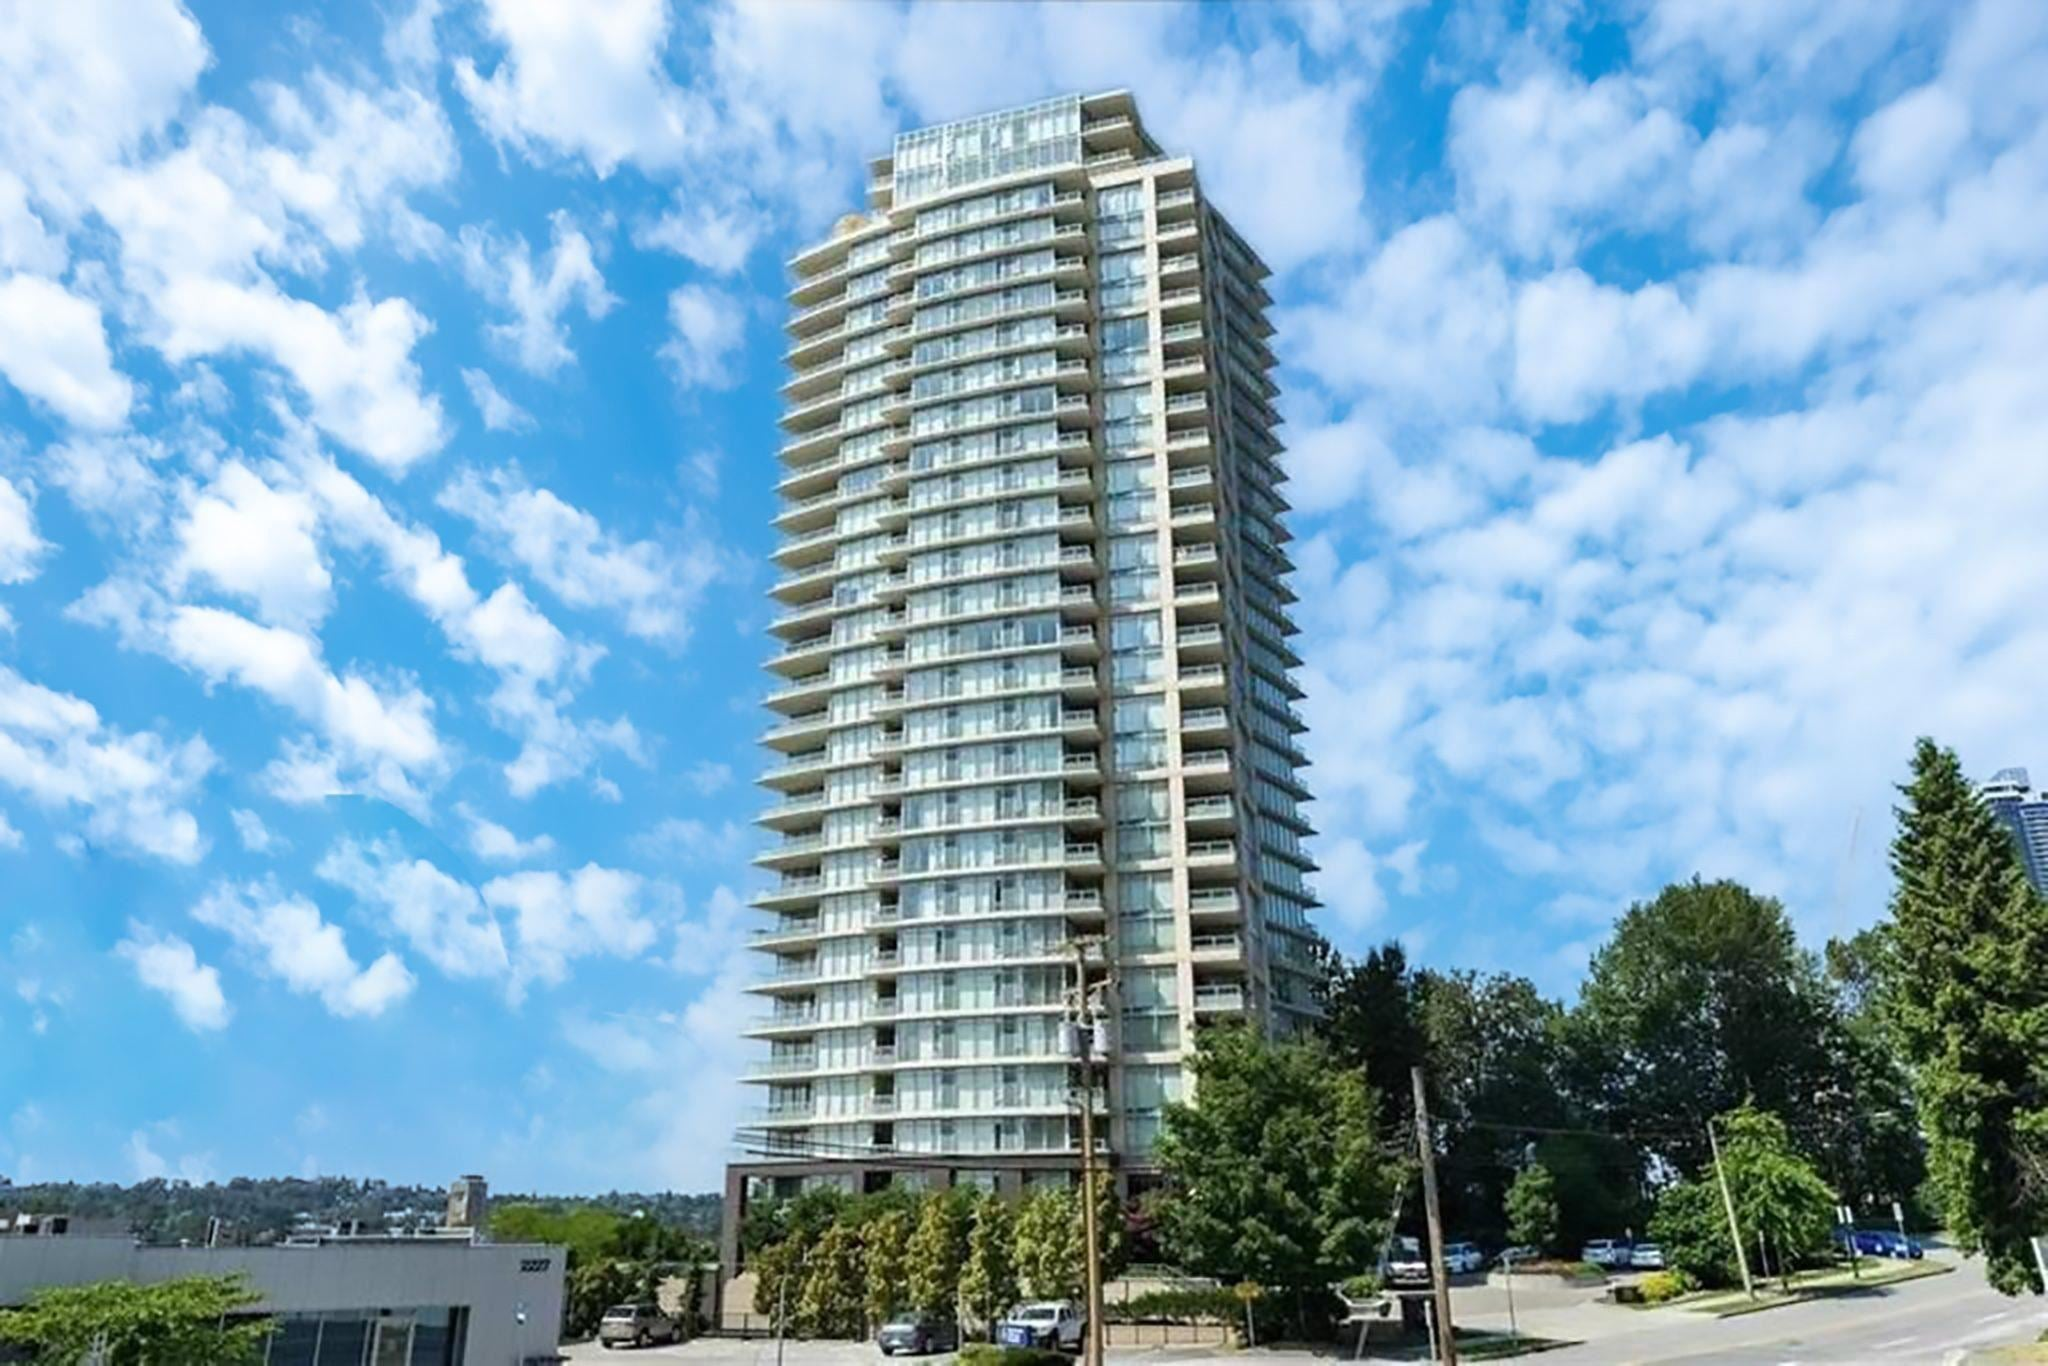 3101 2133 DOUGLAS ROAD - Brentwood Park Apartment/Condo for sale, 3 Bedrooms (R2604896) - #1